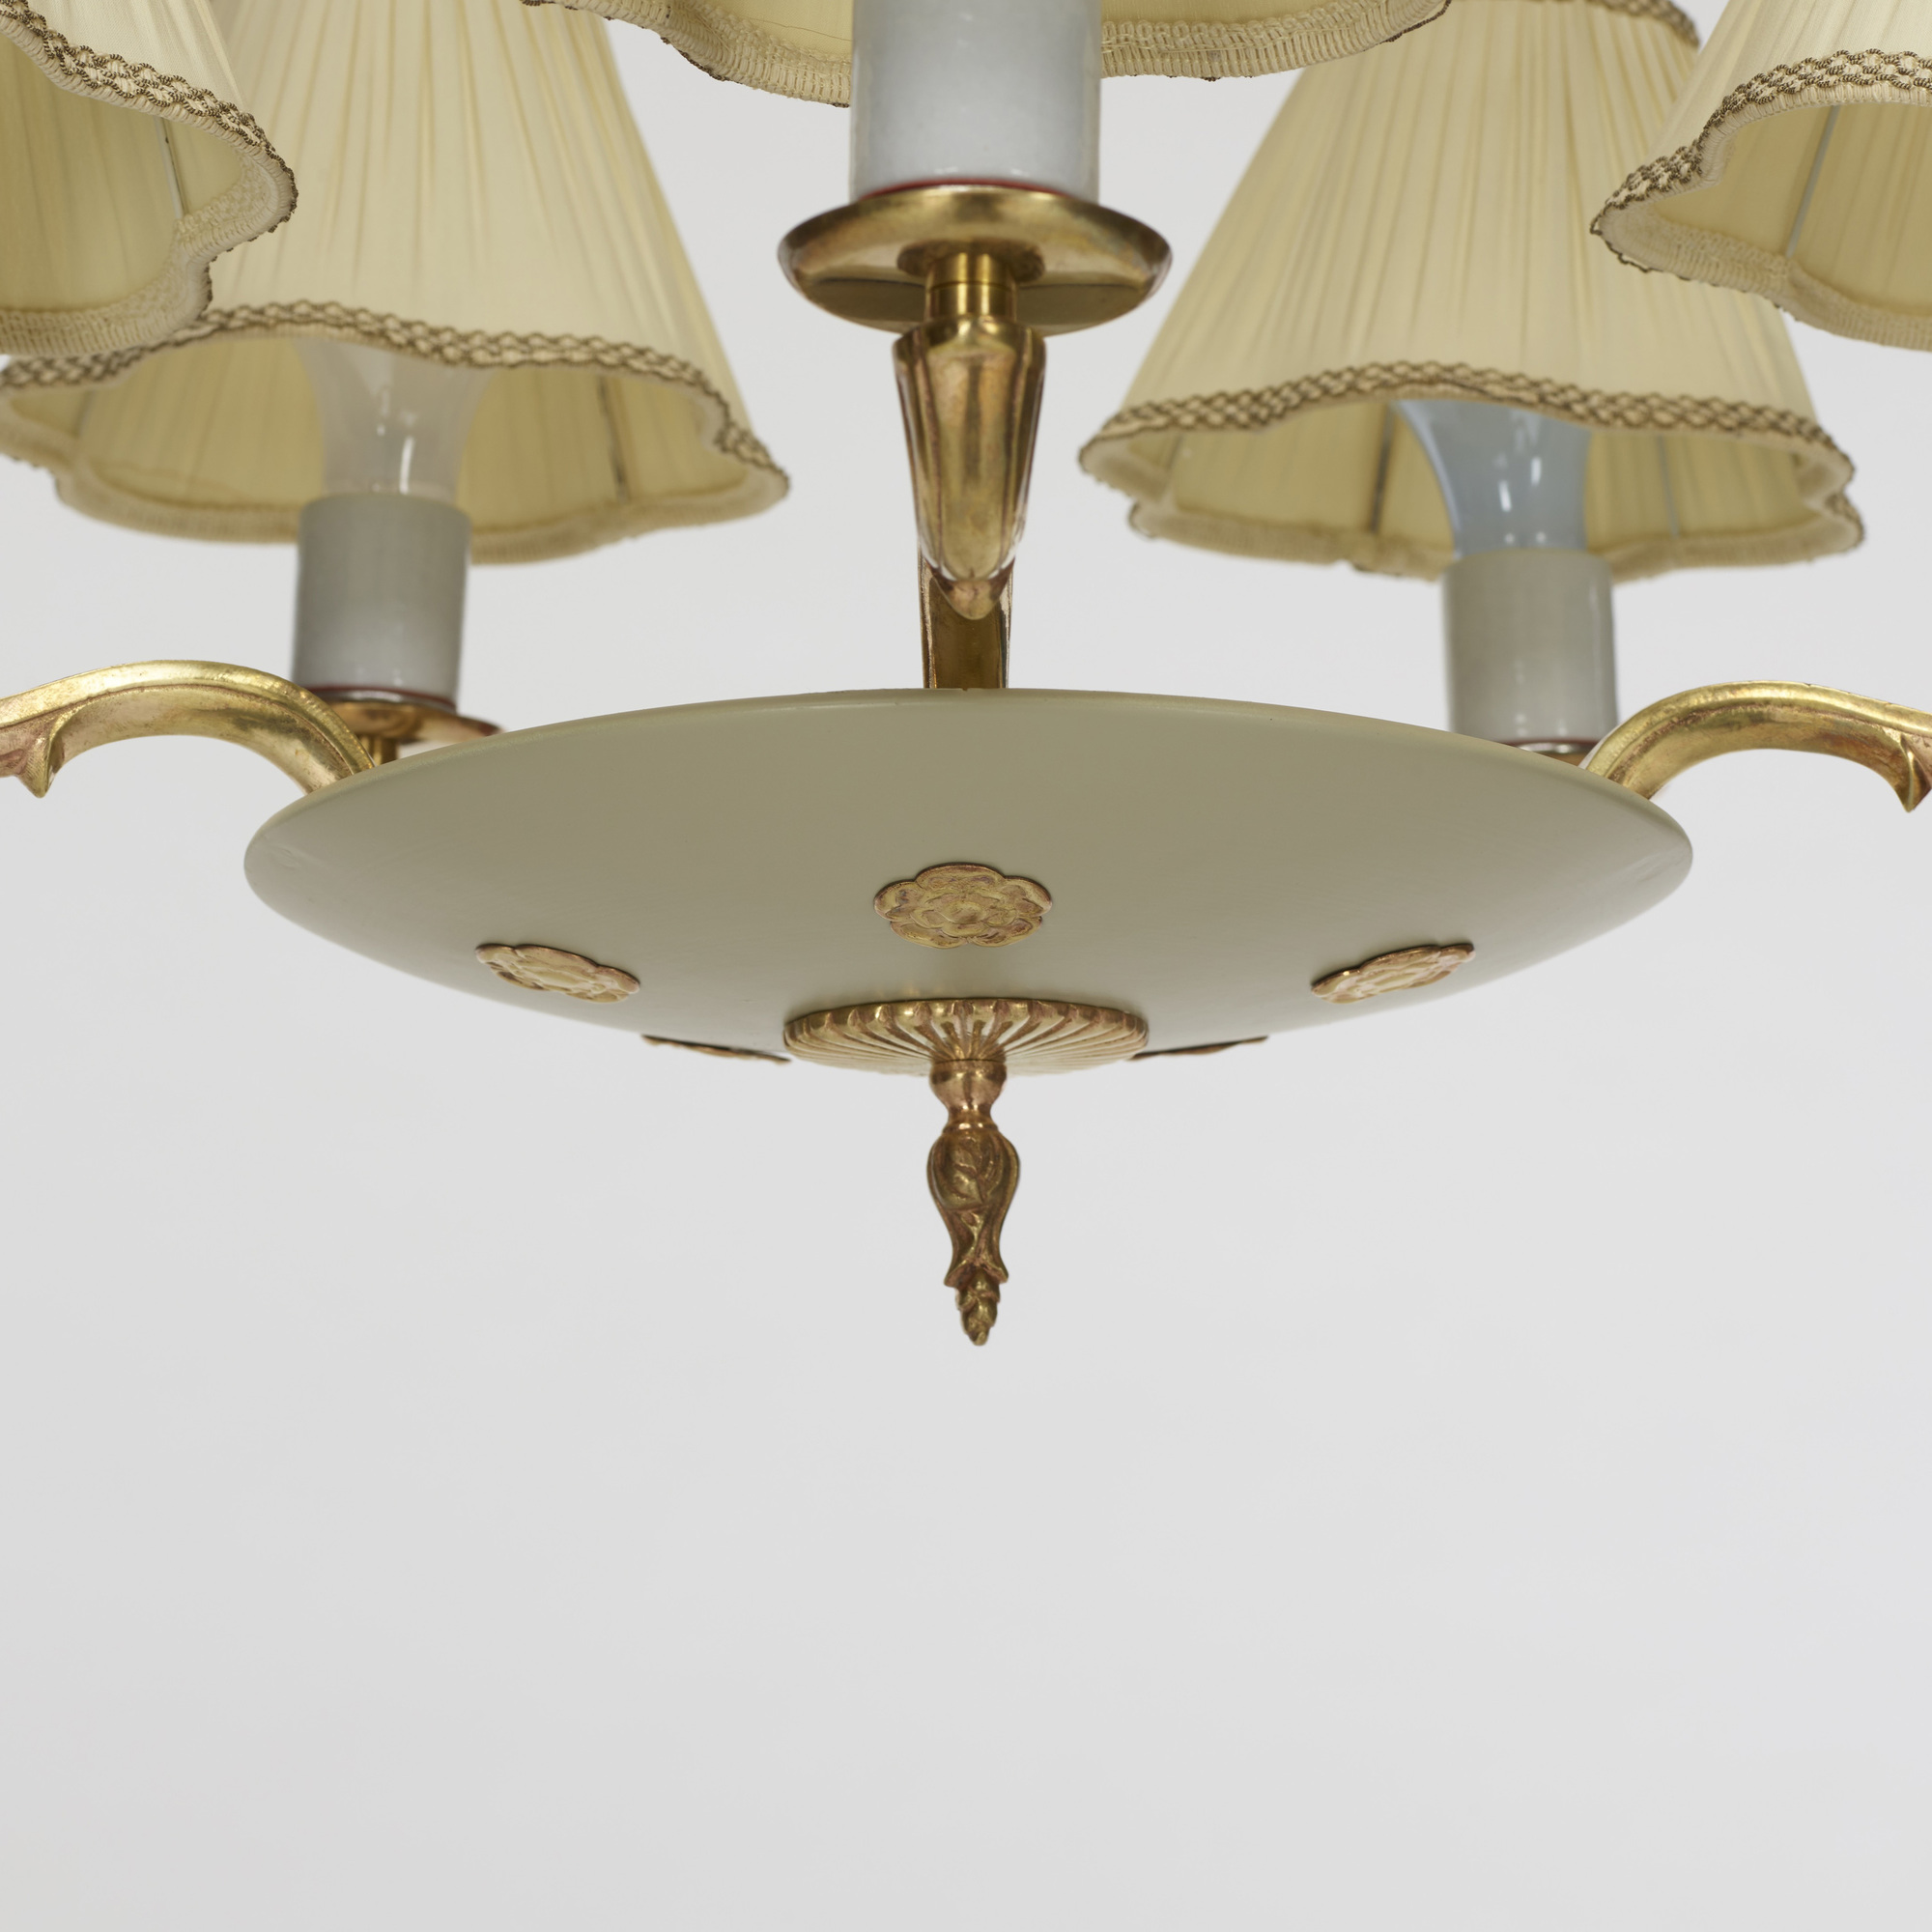 314: Paavo Tynell / chandelier, model 1374 (2 of 2)